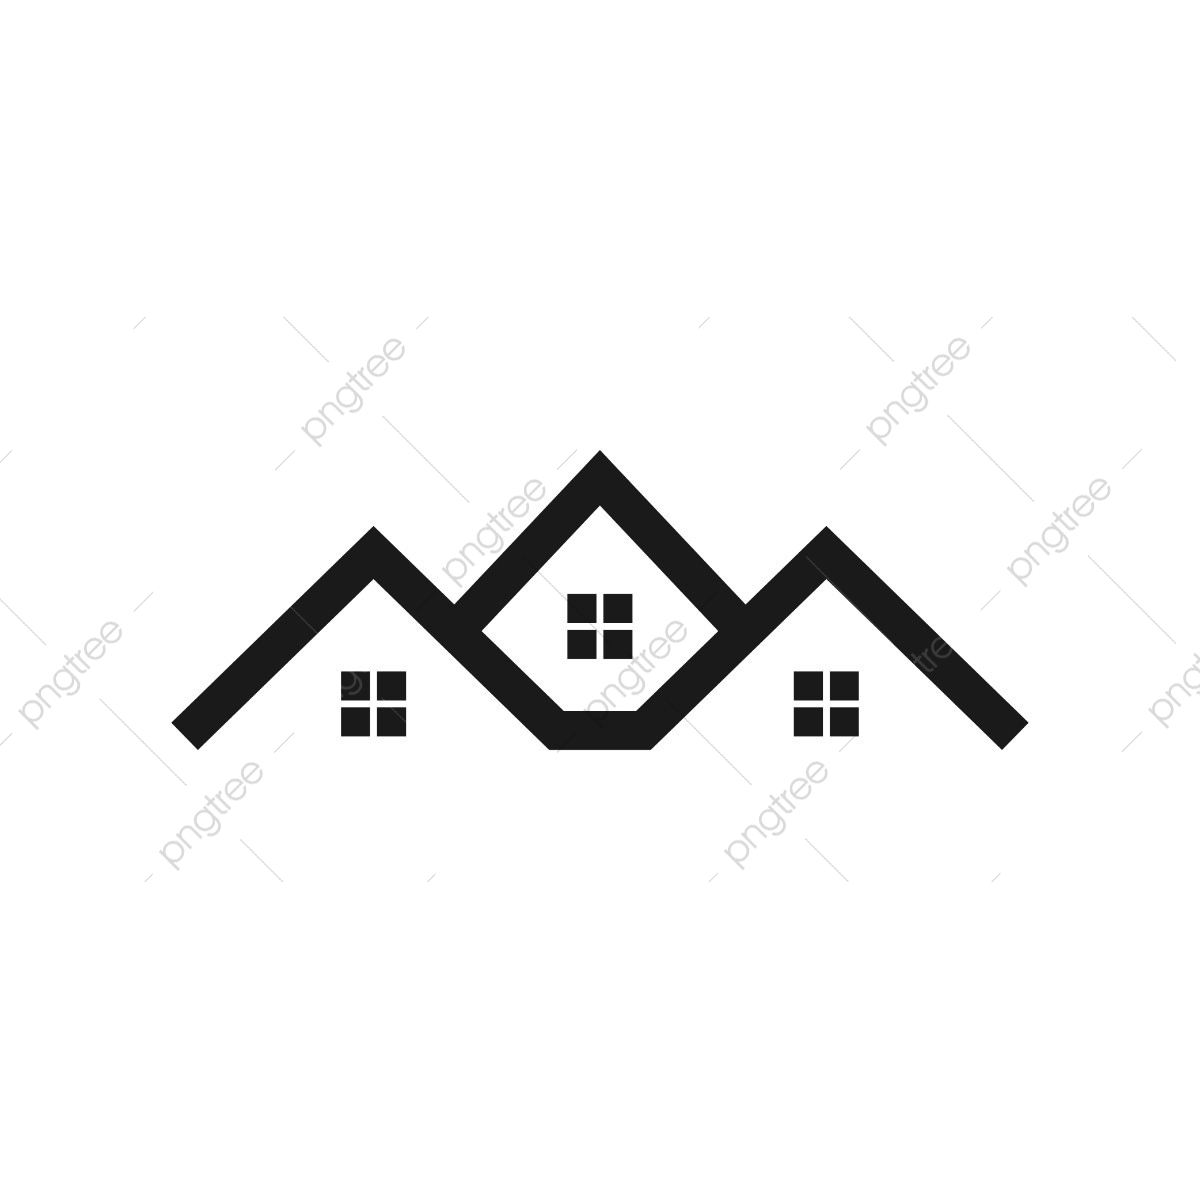 Real Estate House Logo Template, Estate, House, Real PNG and.